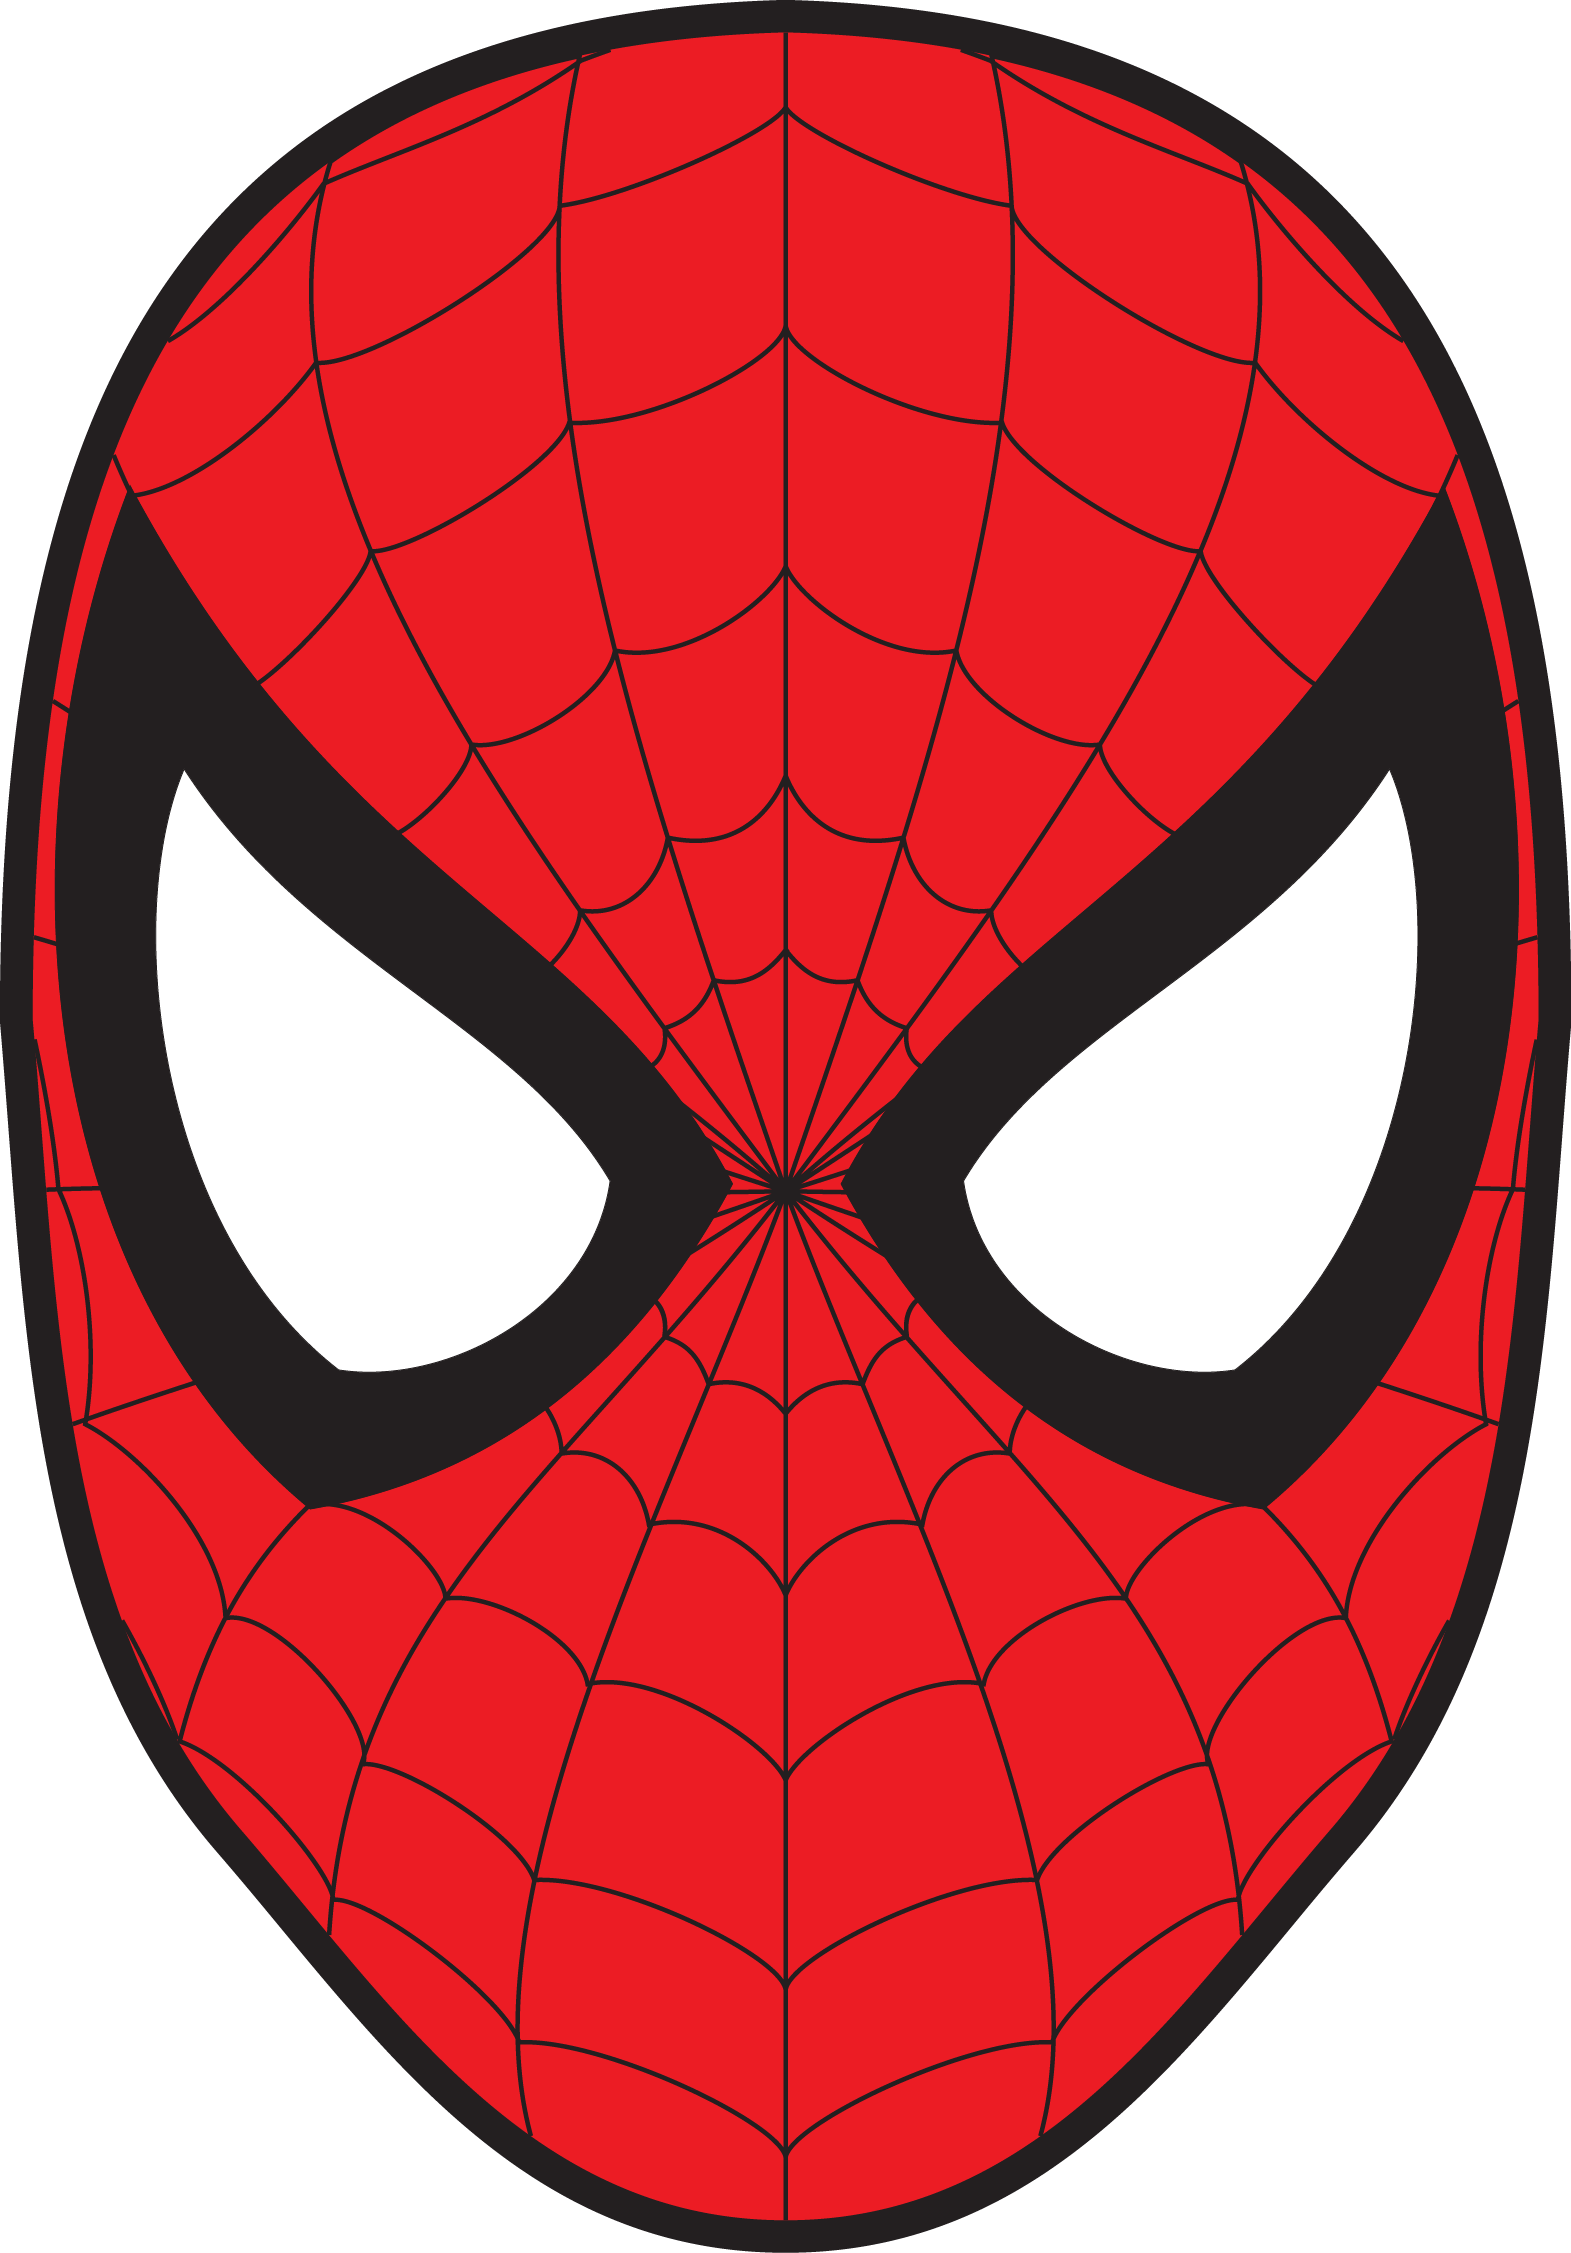 Spiderman face png. Spider man images free